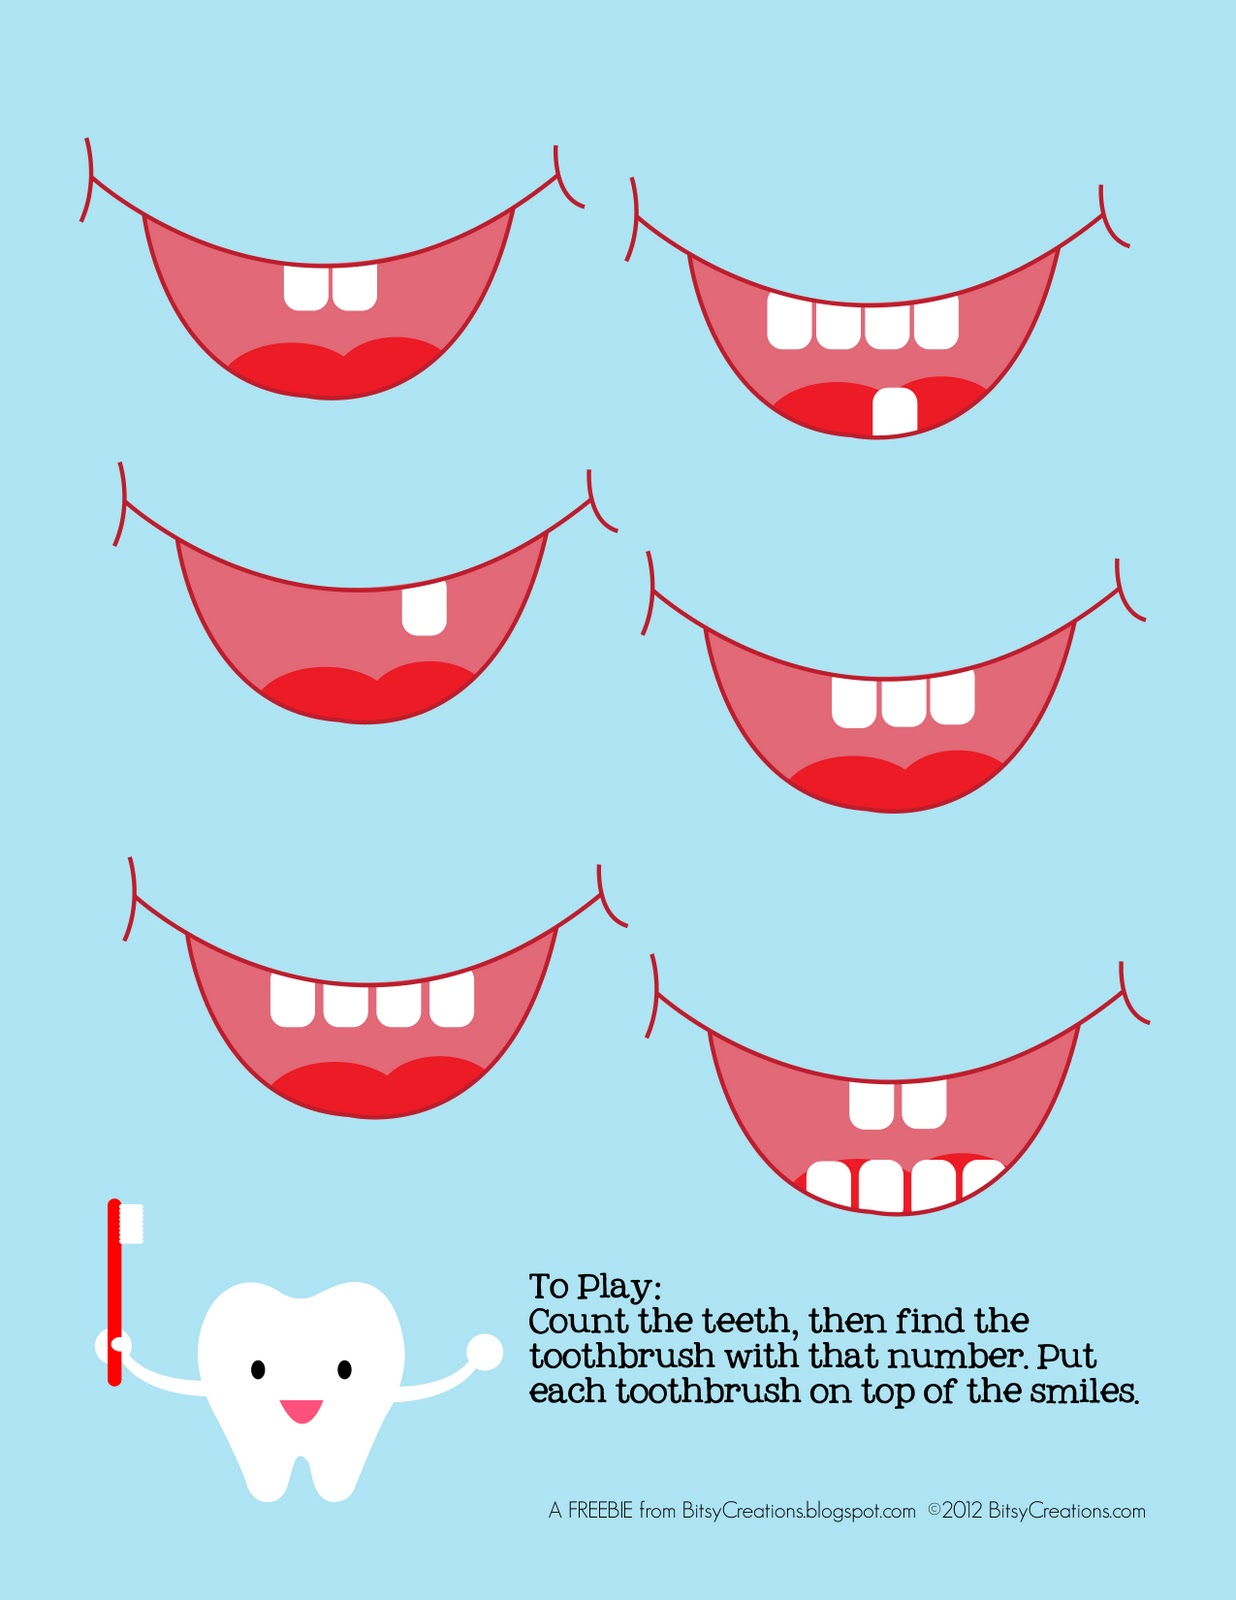 Bitsycreations Free Preschool Tooth Counting Game Printable